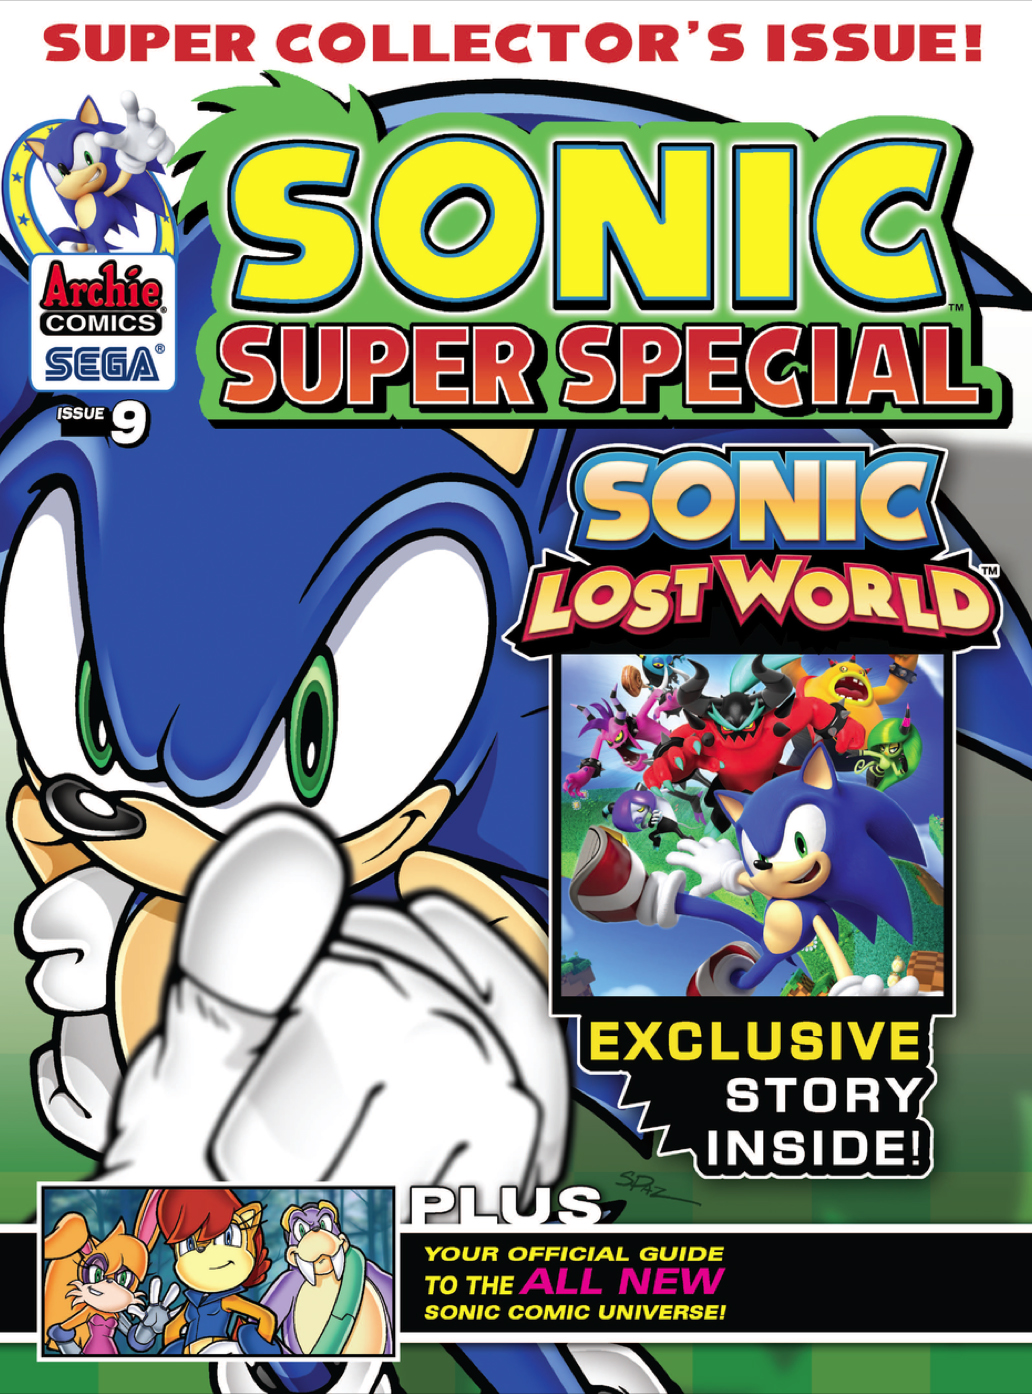 Archie Sonic Super Special Magazine Issue 9 Sonic News